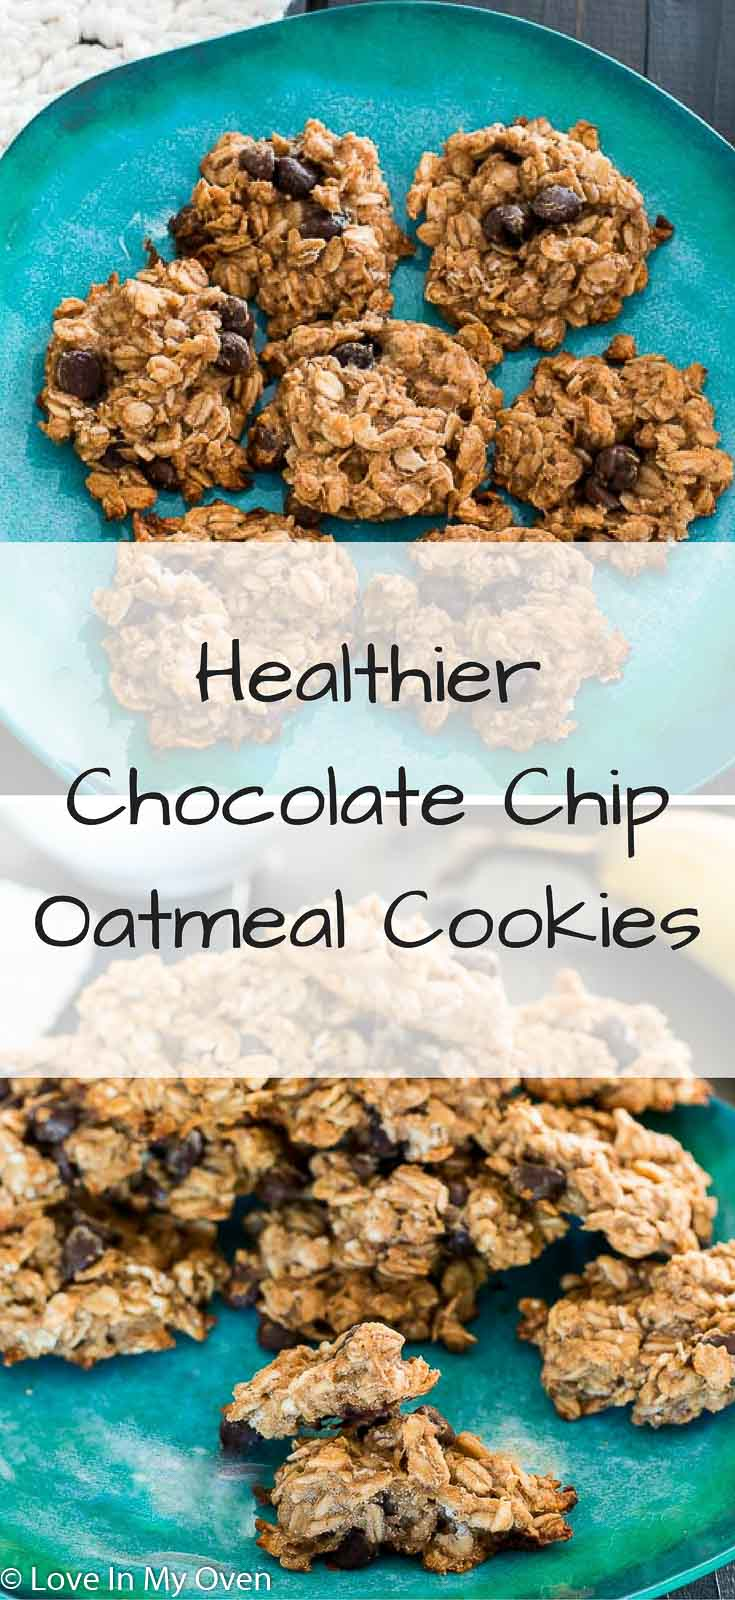 A 4 ingredient oatmeal chocolate chip cookie that you can feel good about!